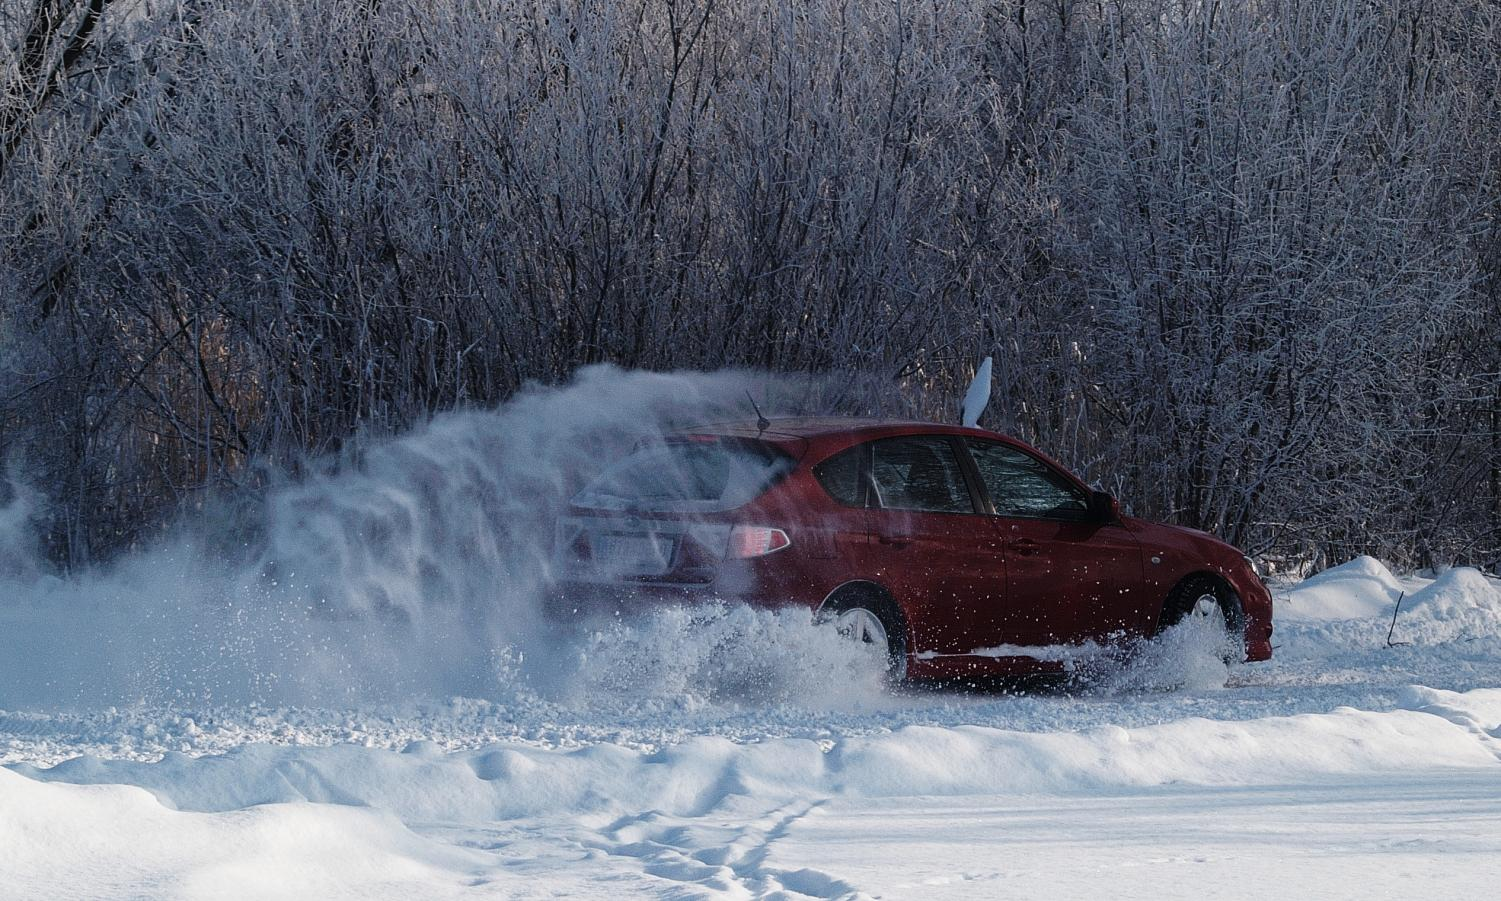 Cars can often swerve and off road when coming upon ice or snow, as pictured above.